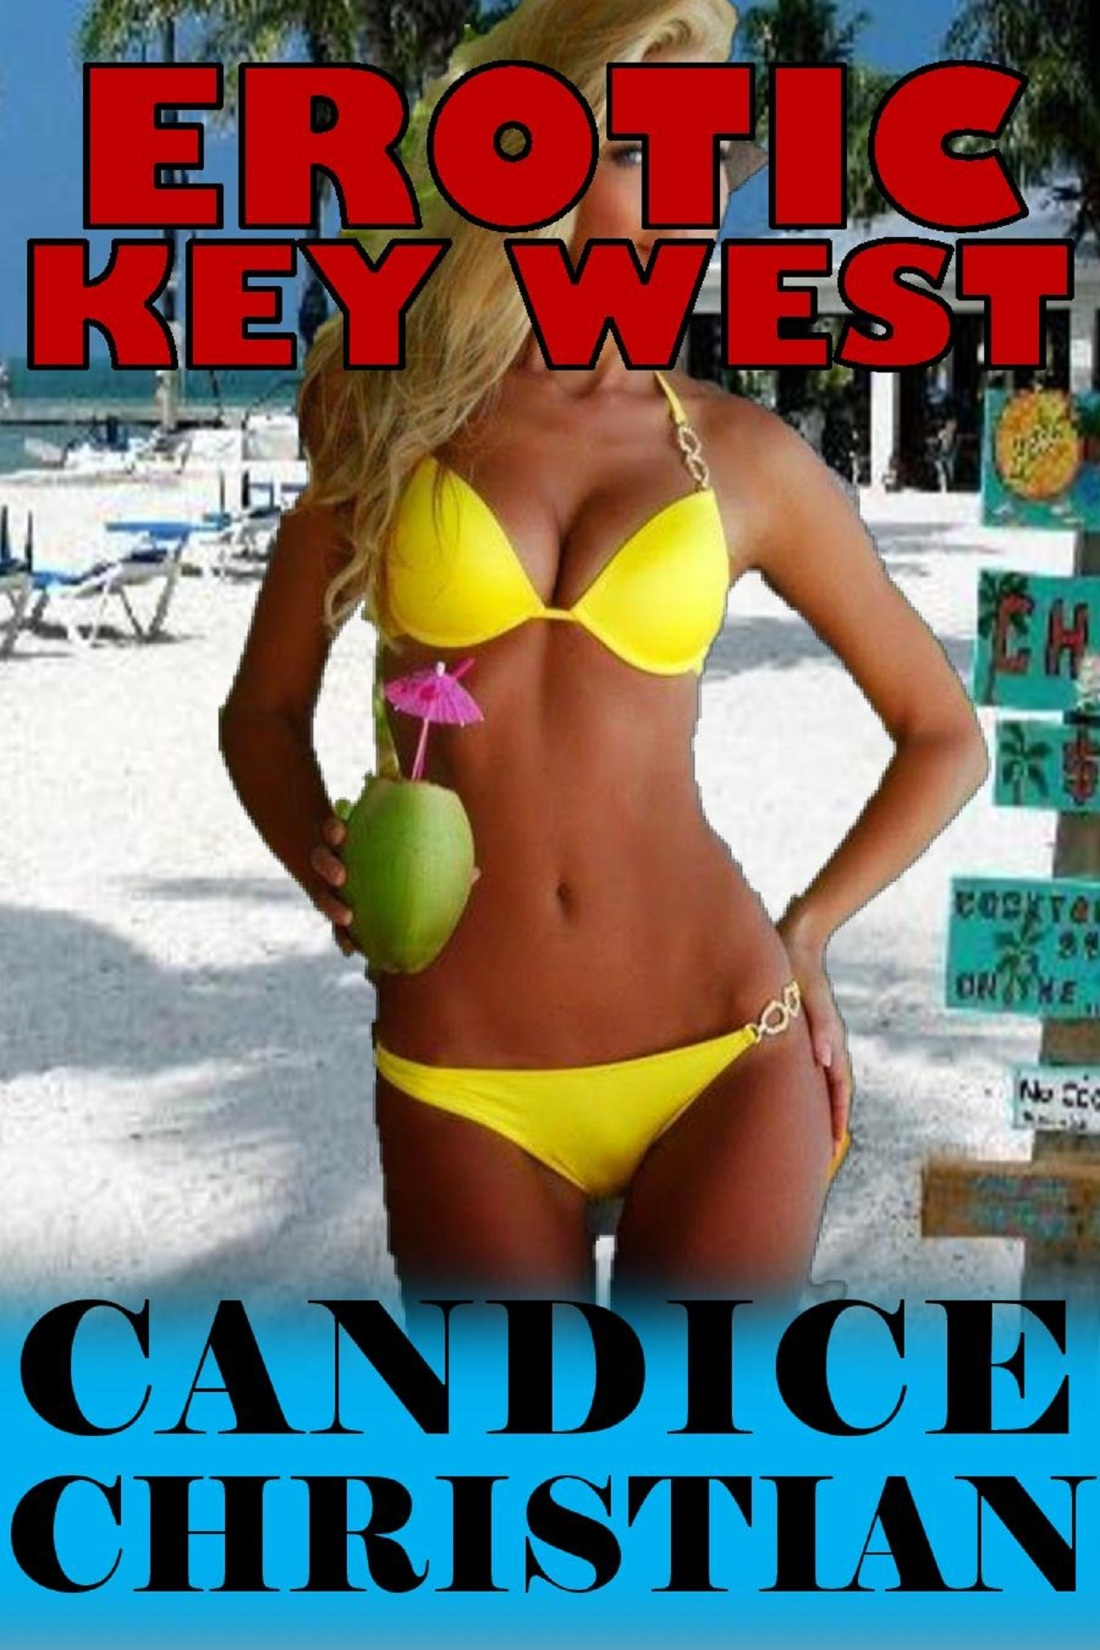 EROTIC KEY WEST COVER V2-RESIZE